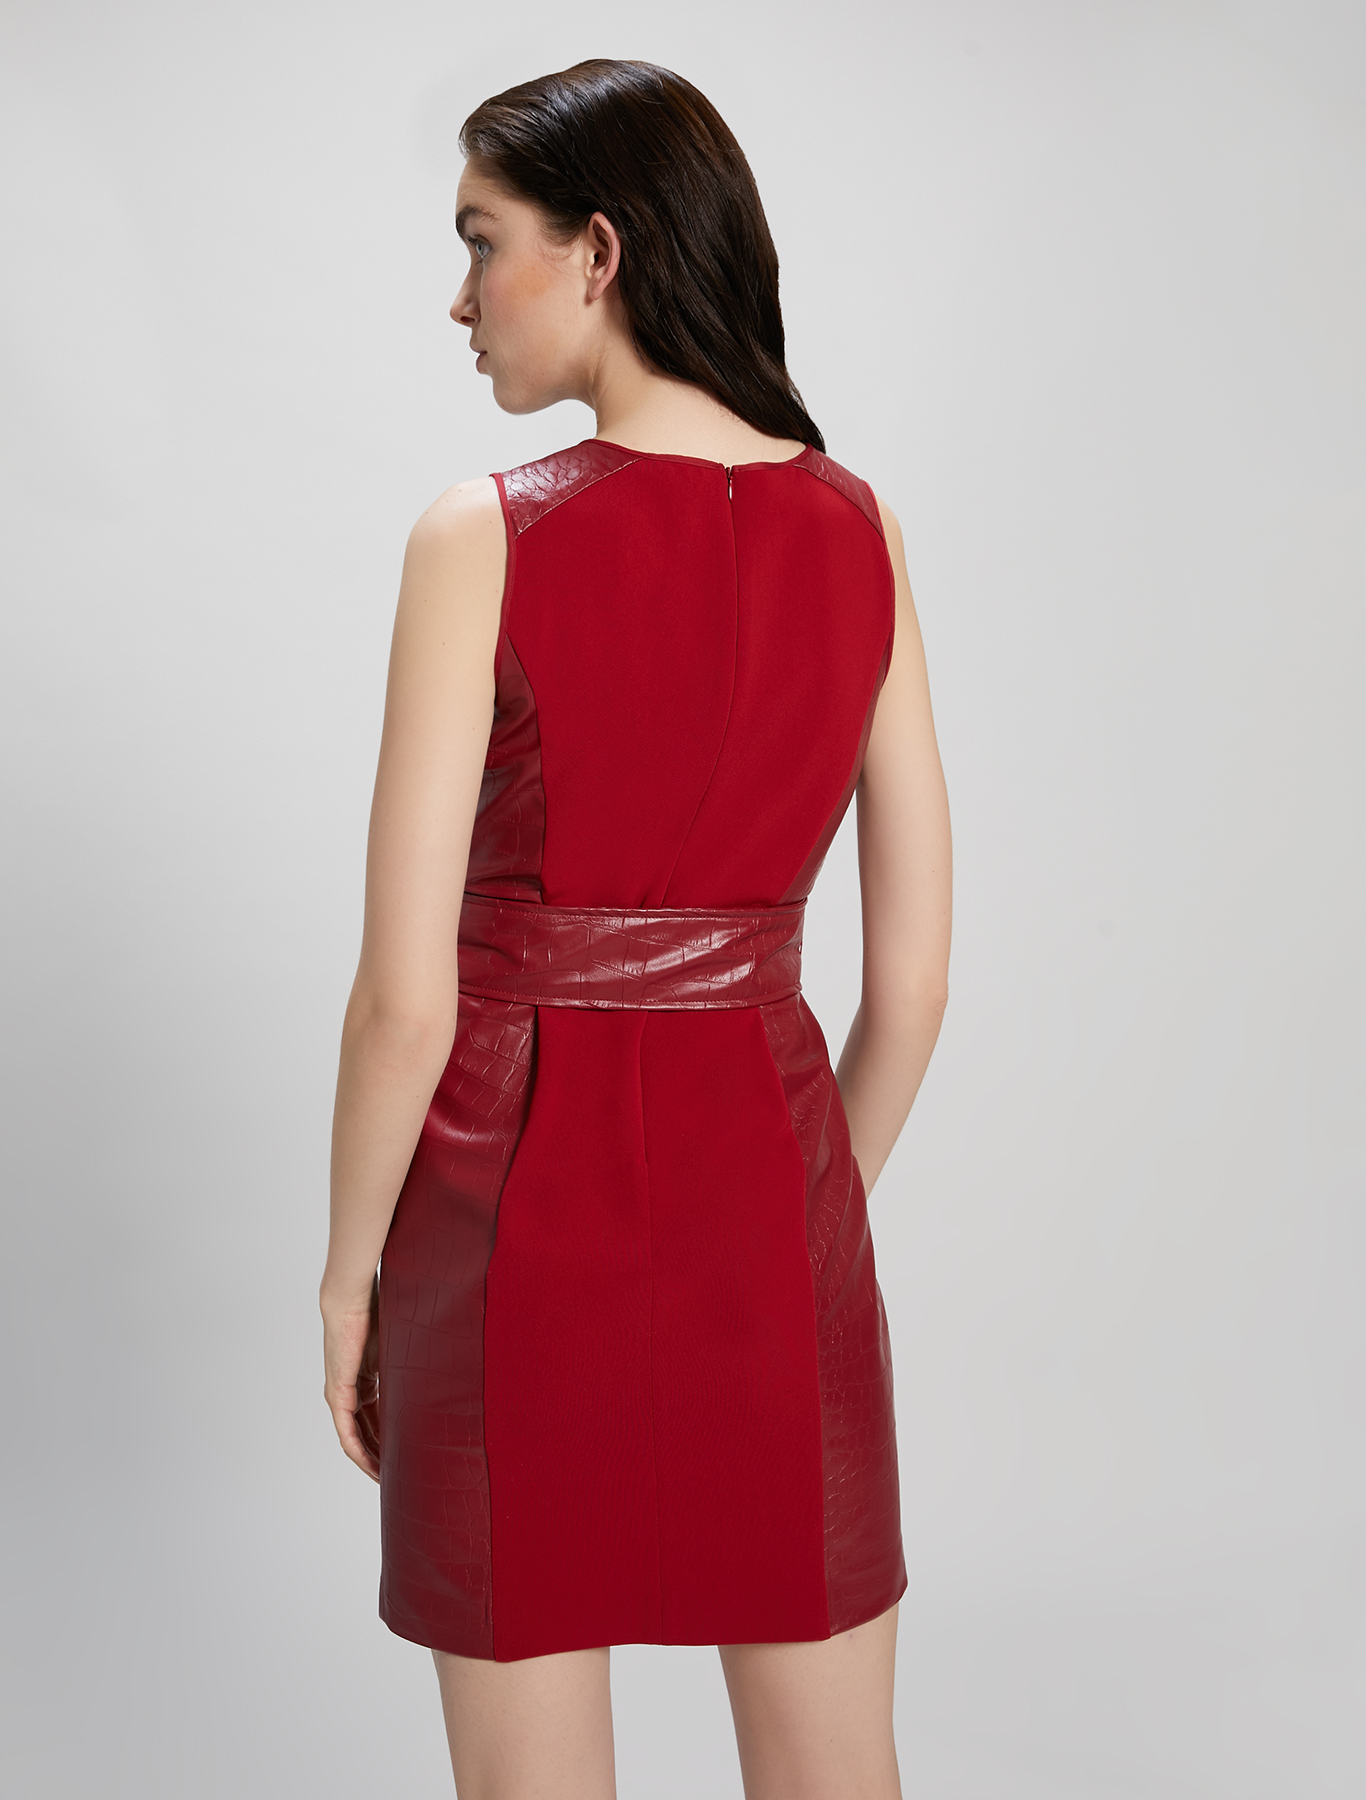 Sheath dress with croc texture - burgundy - pennyblack